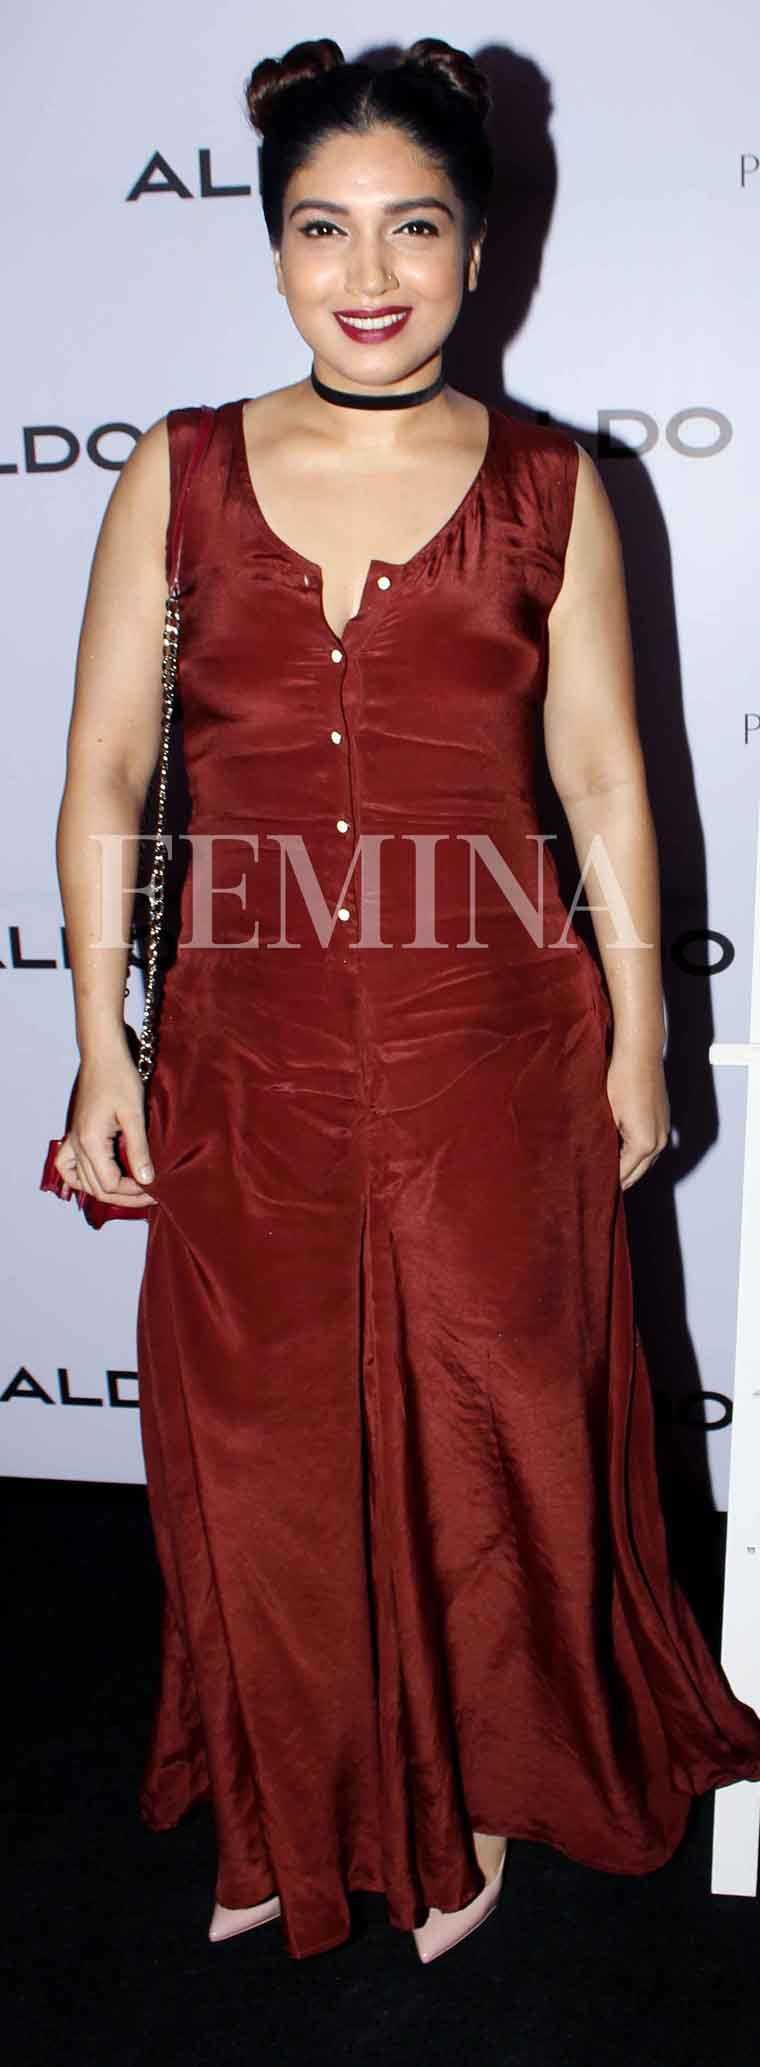 BHUMI PEDNEKAR: Velvet is a hot trend of the season and we love how Bhumi works it by paring her velvet Cord jumpsuit with Minnie Mouse-style buns and a choker neckpiece.